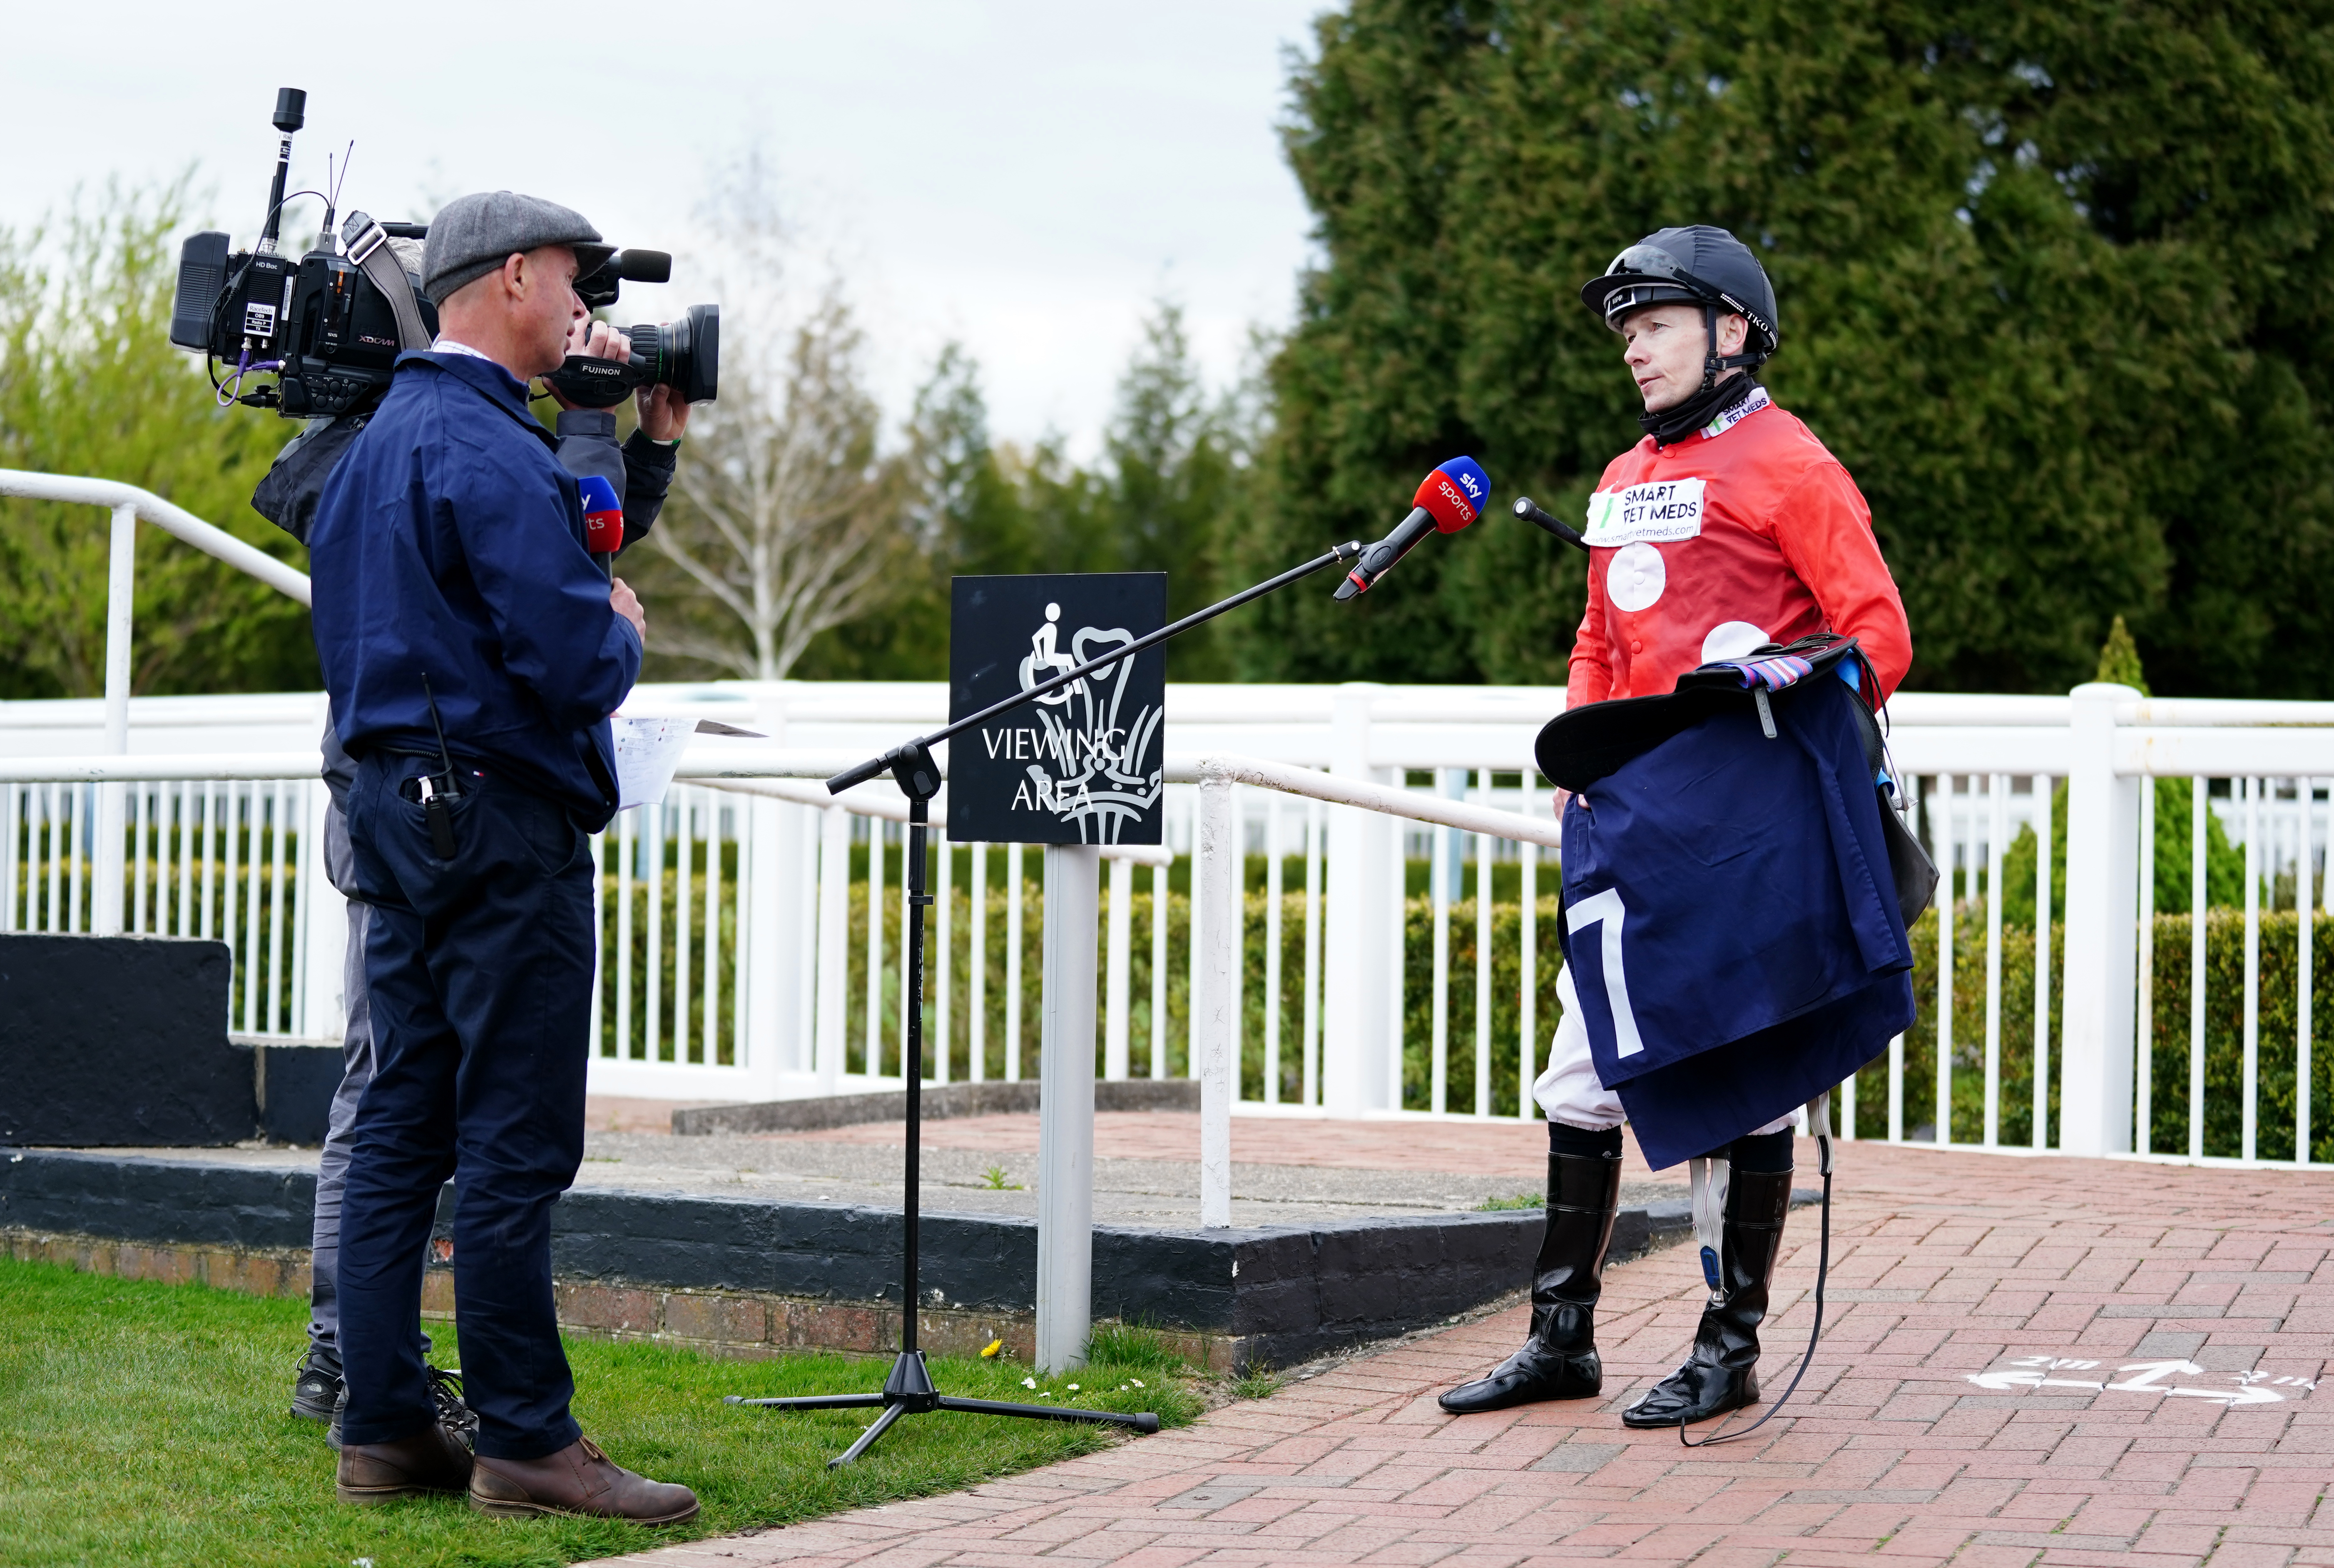 <p>Jockey Jamie Spencer speaks to Sky Sports after winning the the Kentucky Derby On Sky Sports Racing Handicap with Billhilly at Lingfield Park Racecourse. Picture date: Thursday April 29, 2021.</p>